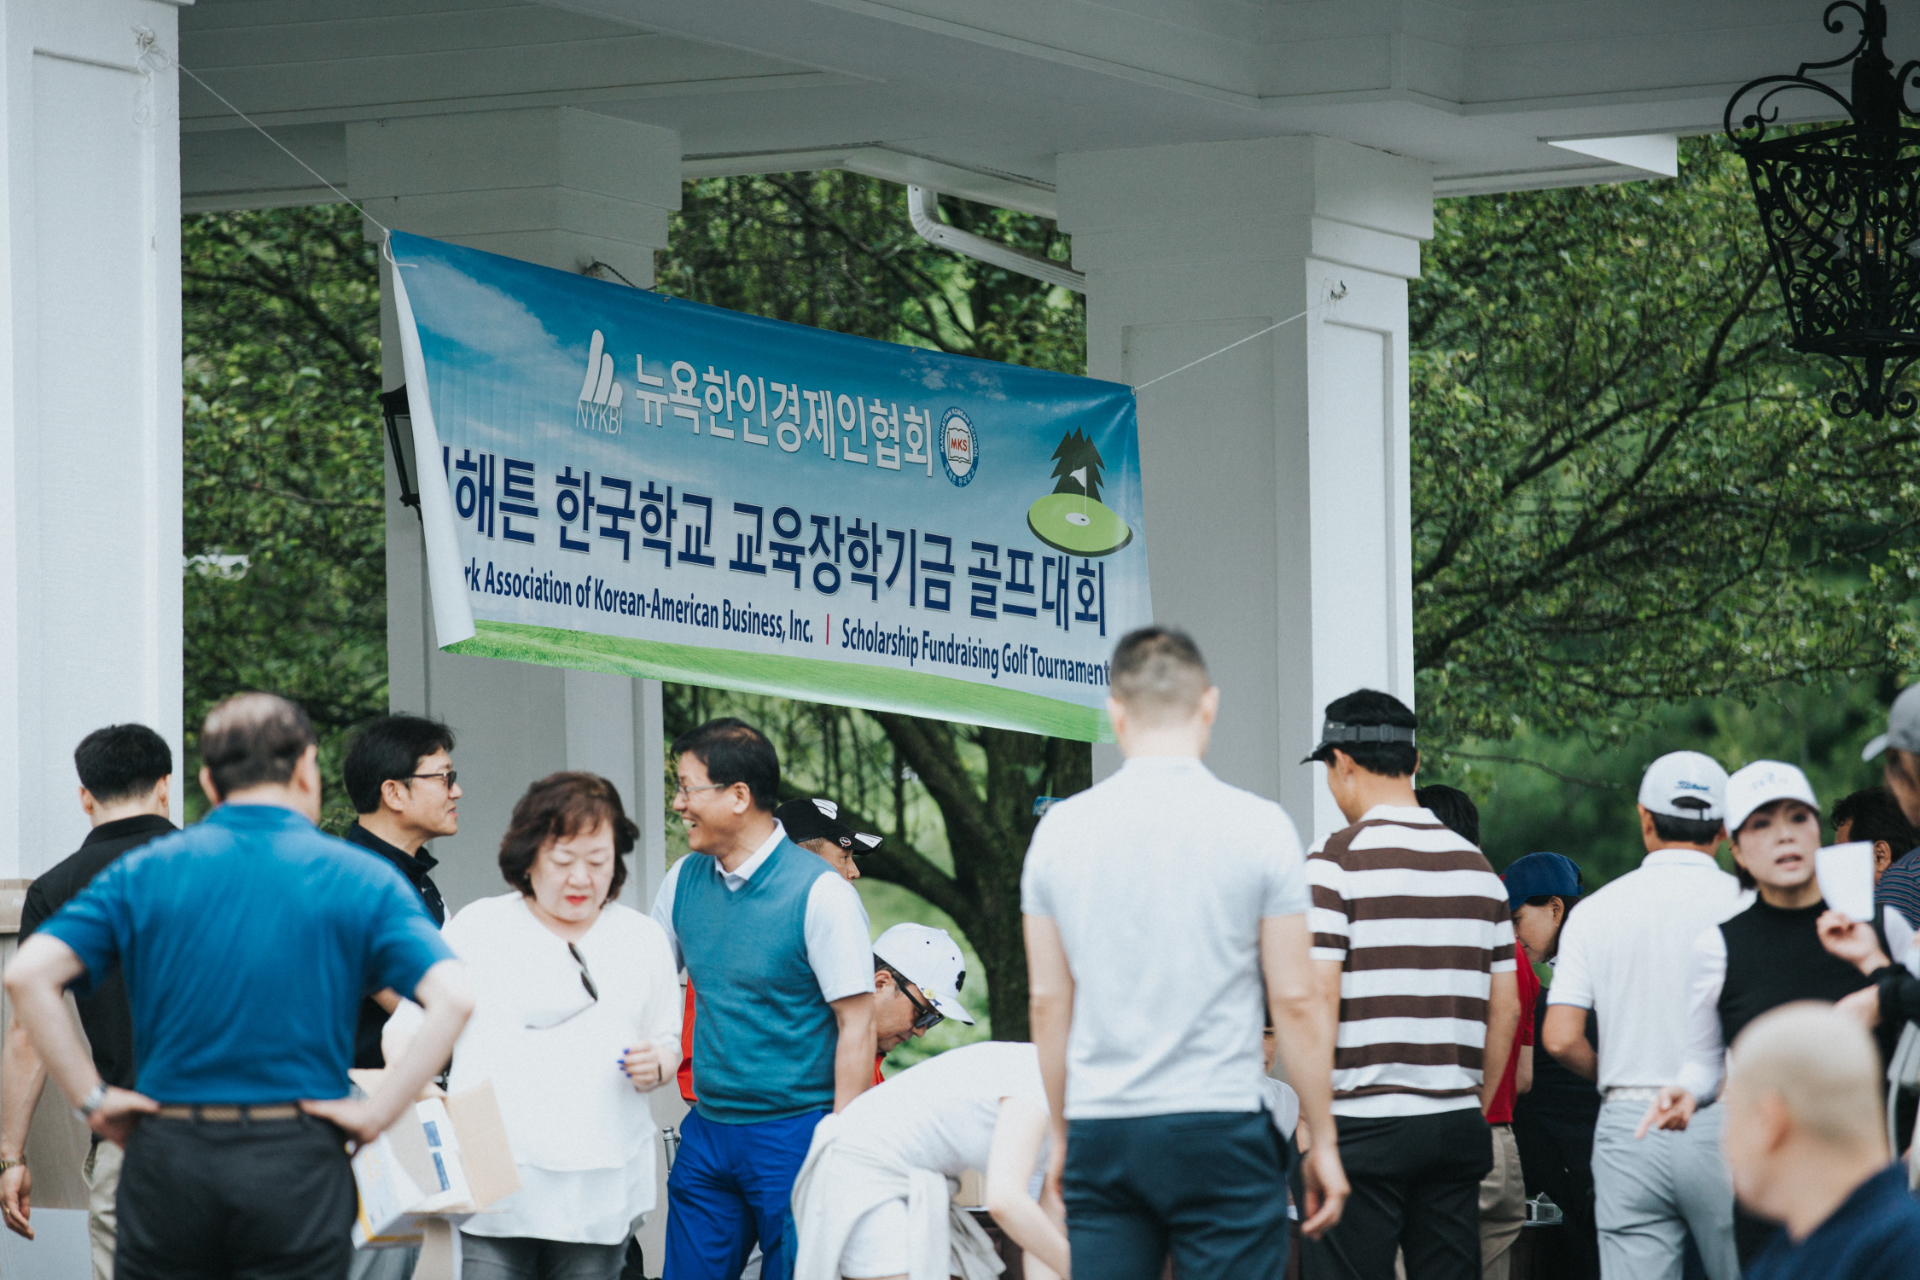 https://nykbi.com/new/wp-content/uploads/2019/07/190619-Scholarship-Fundraising-Golf-Tournament-003.jpg